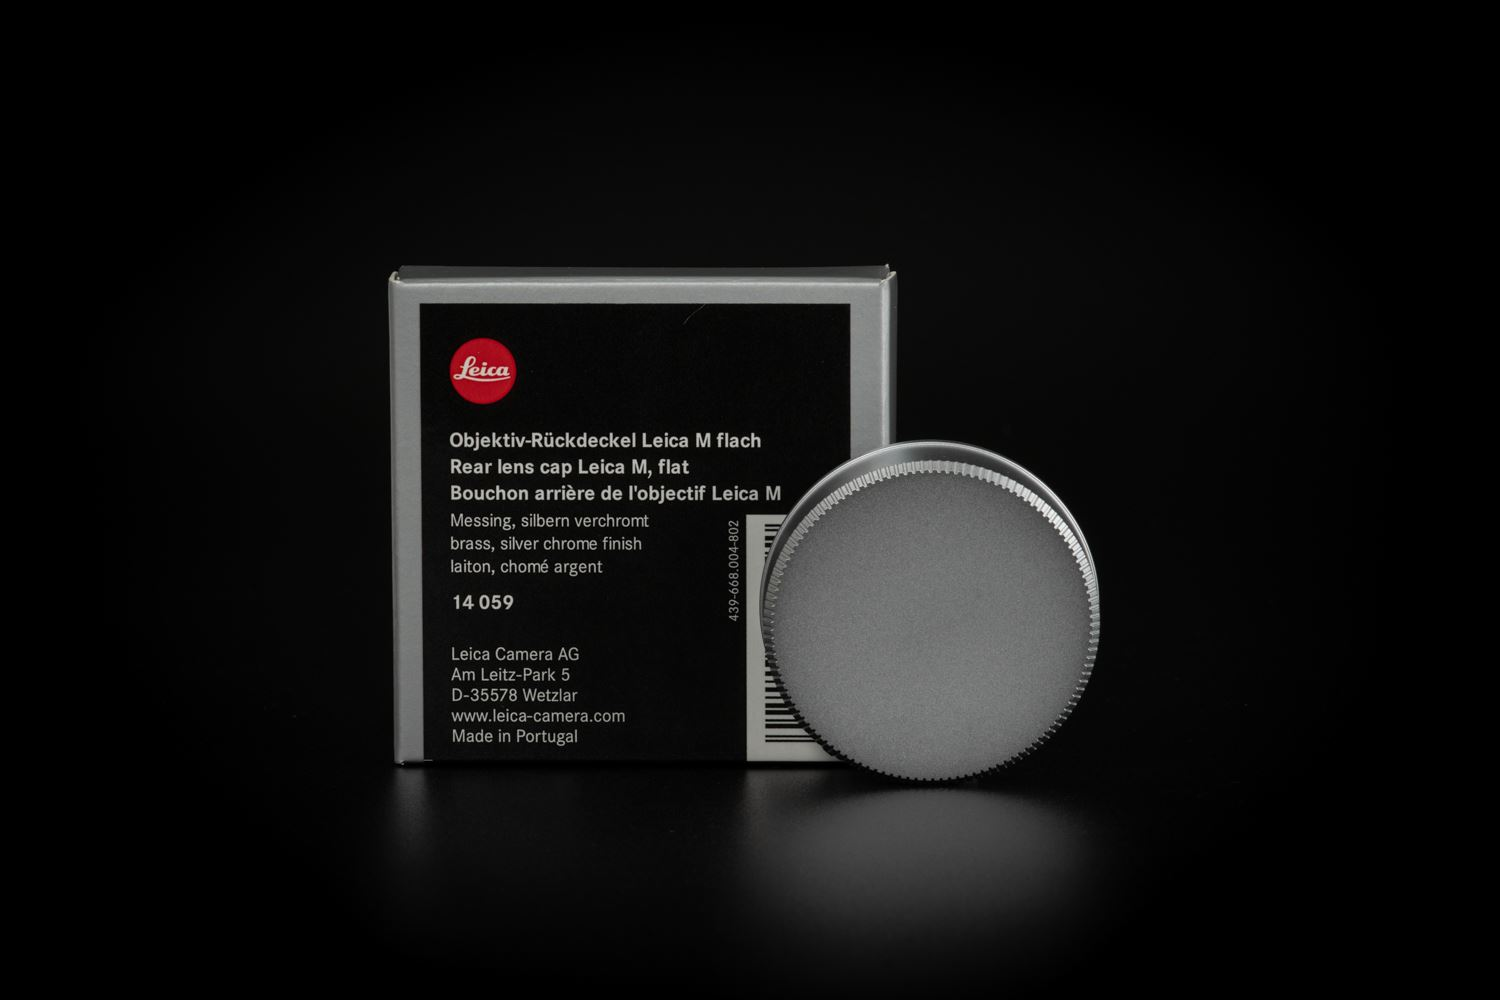 Picture of leica Rear lens cap M, flat, brass, silver chrome finish